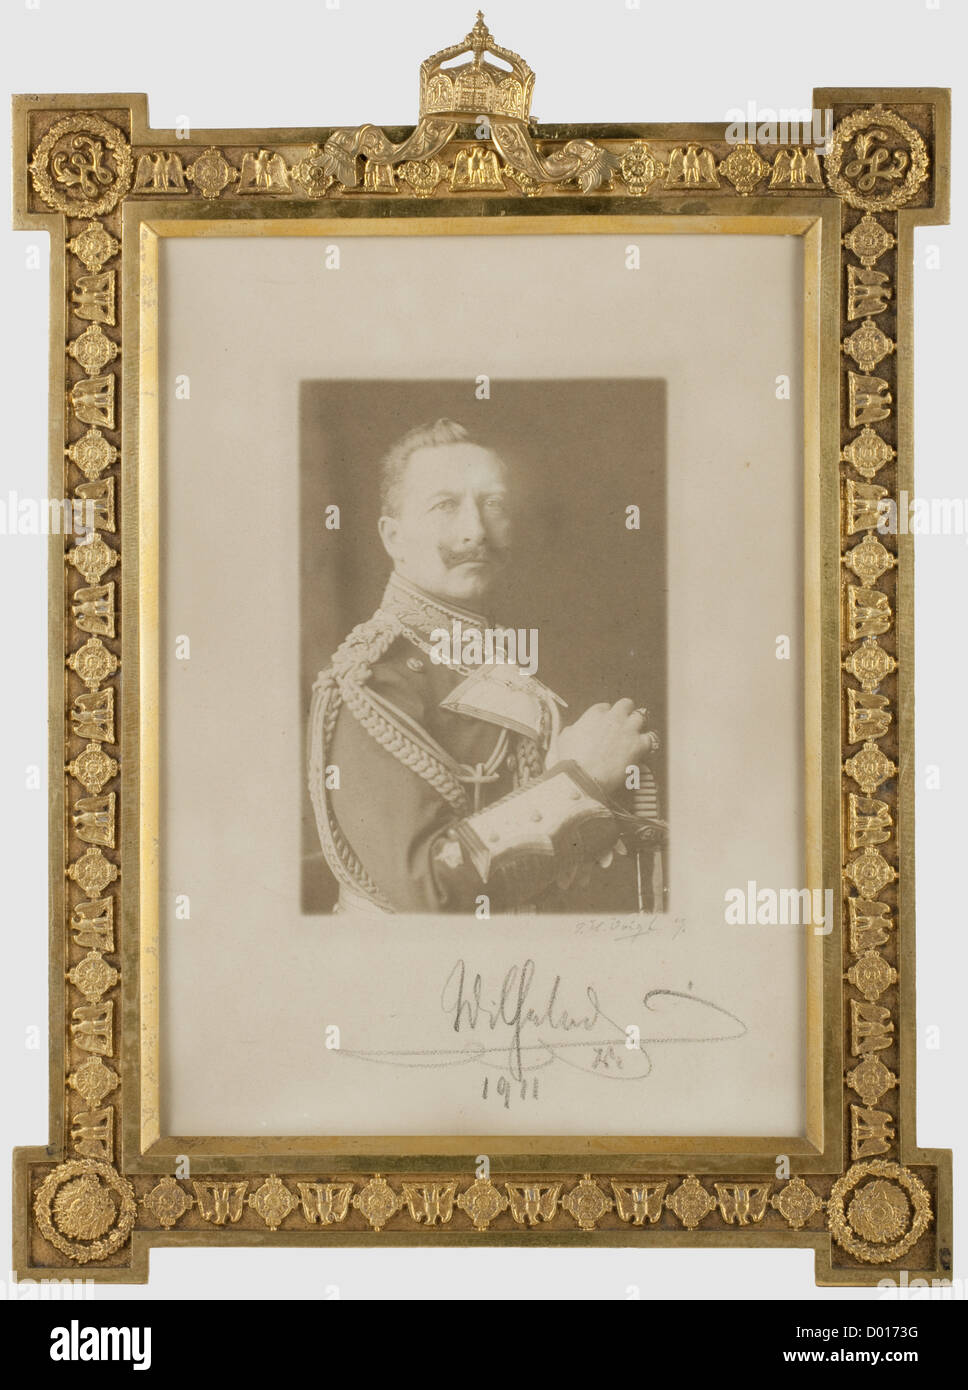 Kaiser Wilhelm II - a dedication picture frame, Gilt brass frame with surrounding collar of the Order of the Black - Stock Image